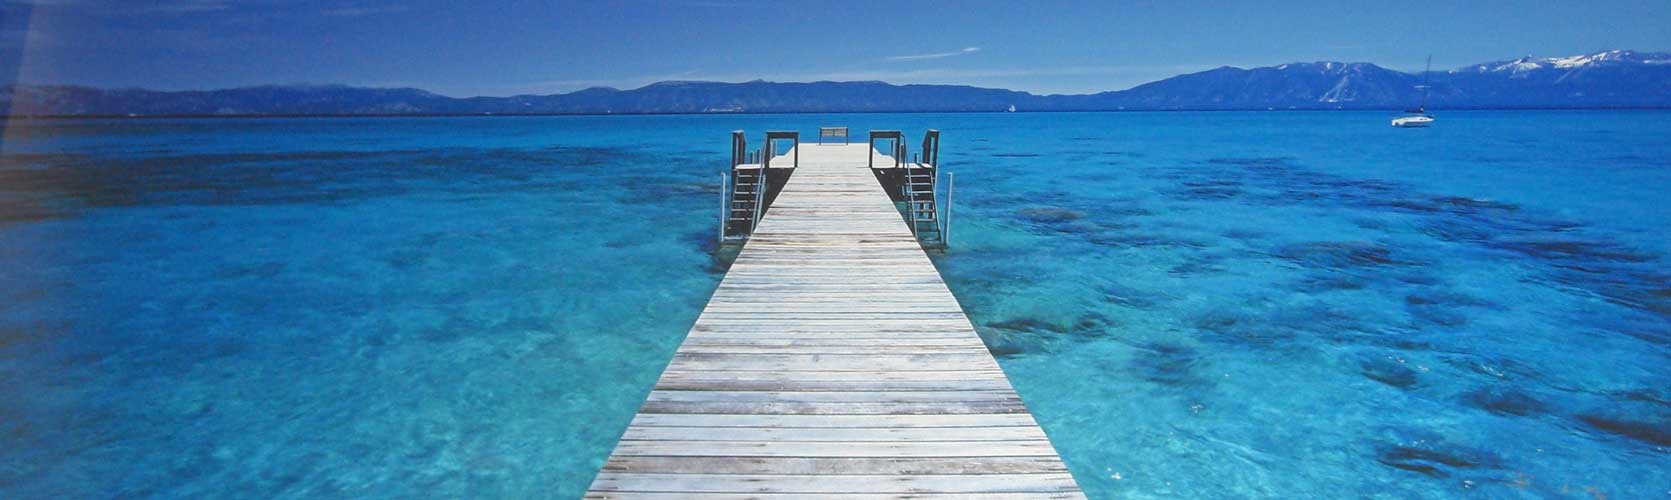 Tahoe Jetty by Peter Lik